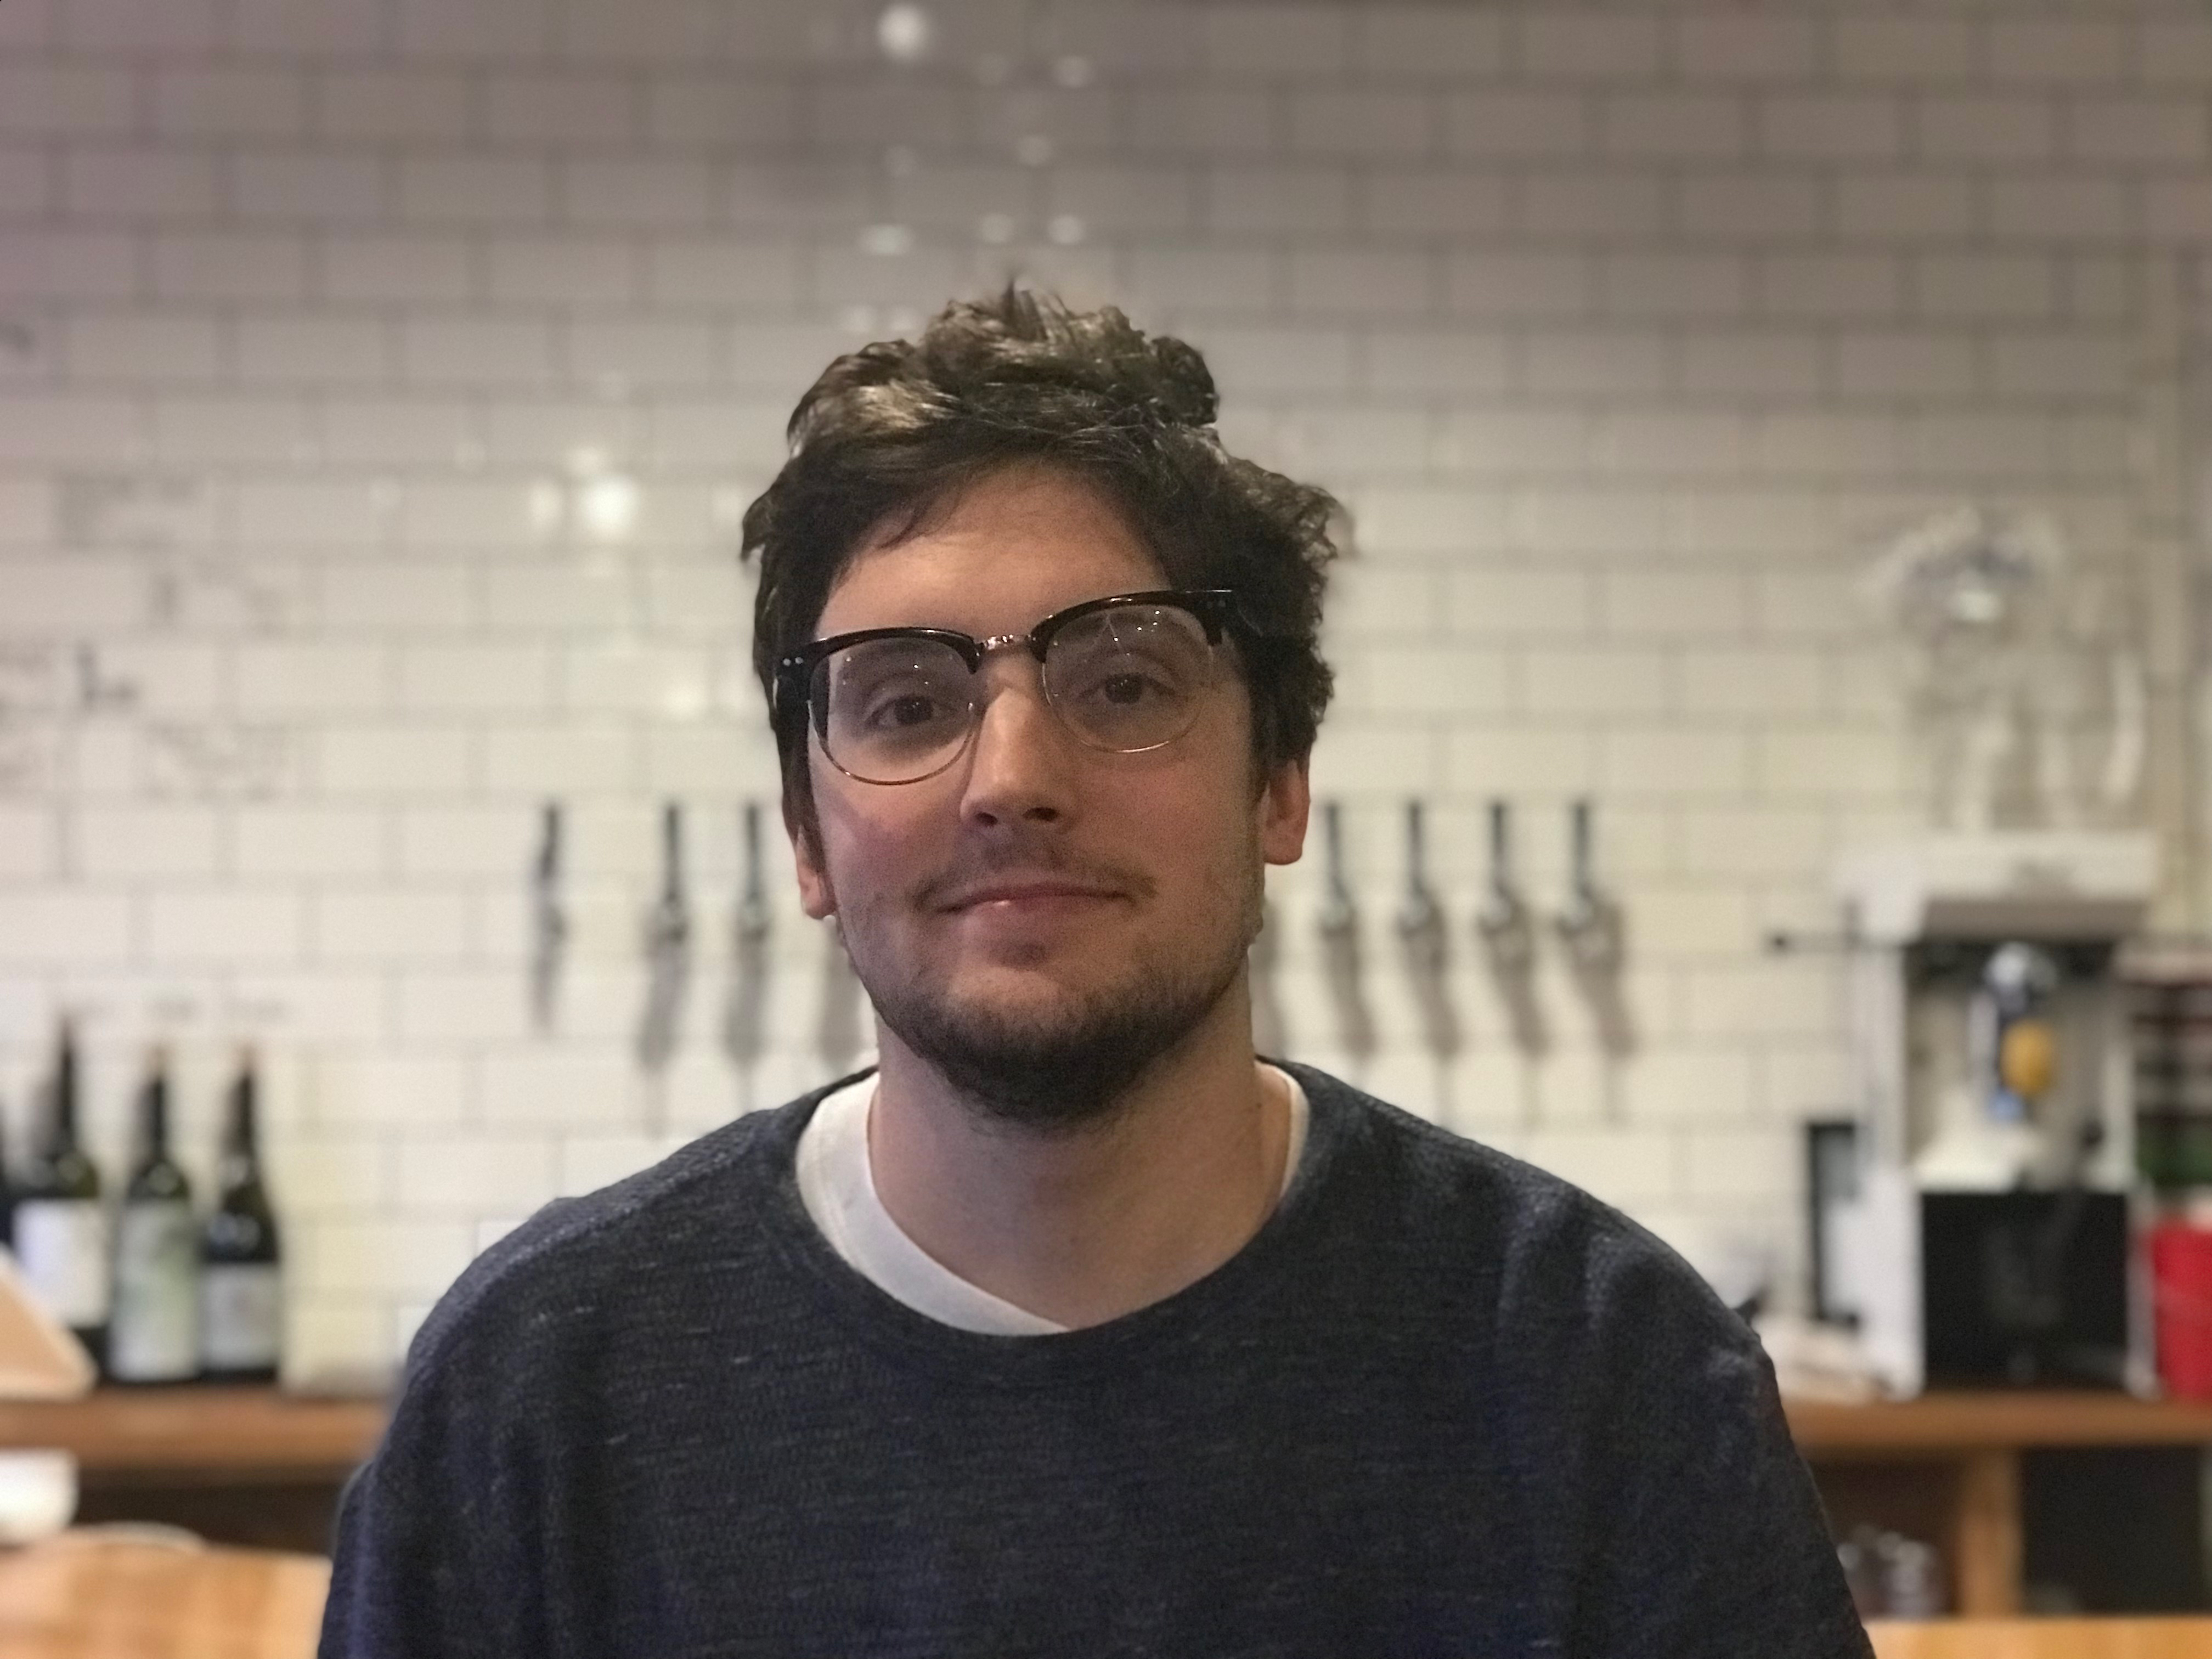 Colin Pratt, Co-founder and Co-owner of Delaware Supply Beer Bar